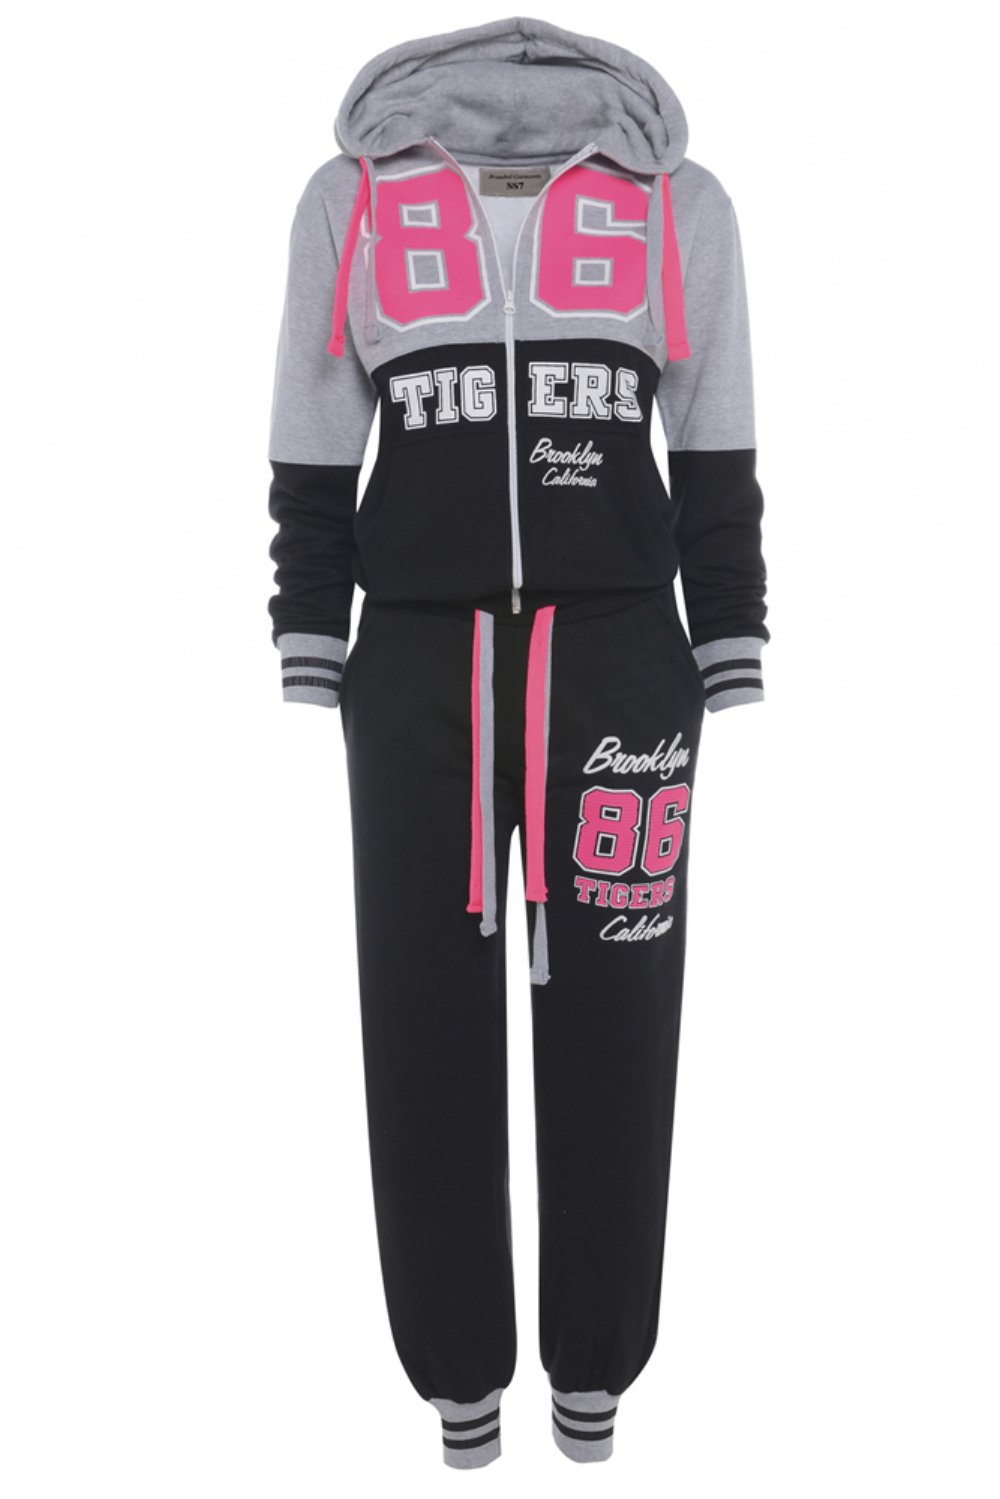 SS7 Plus Size Women's Tracksuit, Sizes 16 to 24